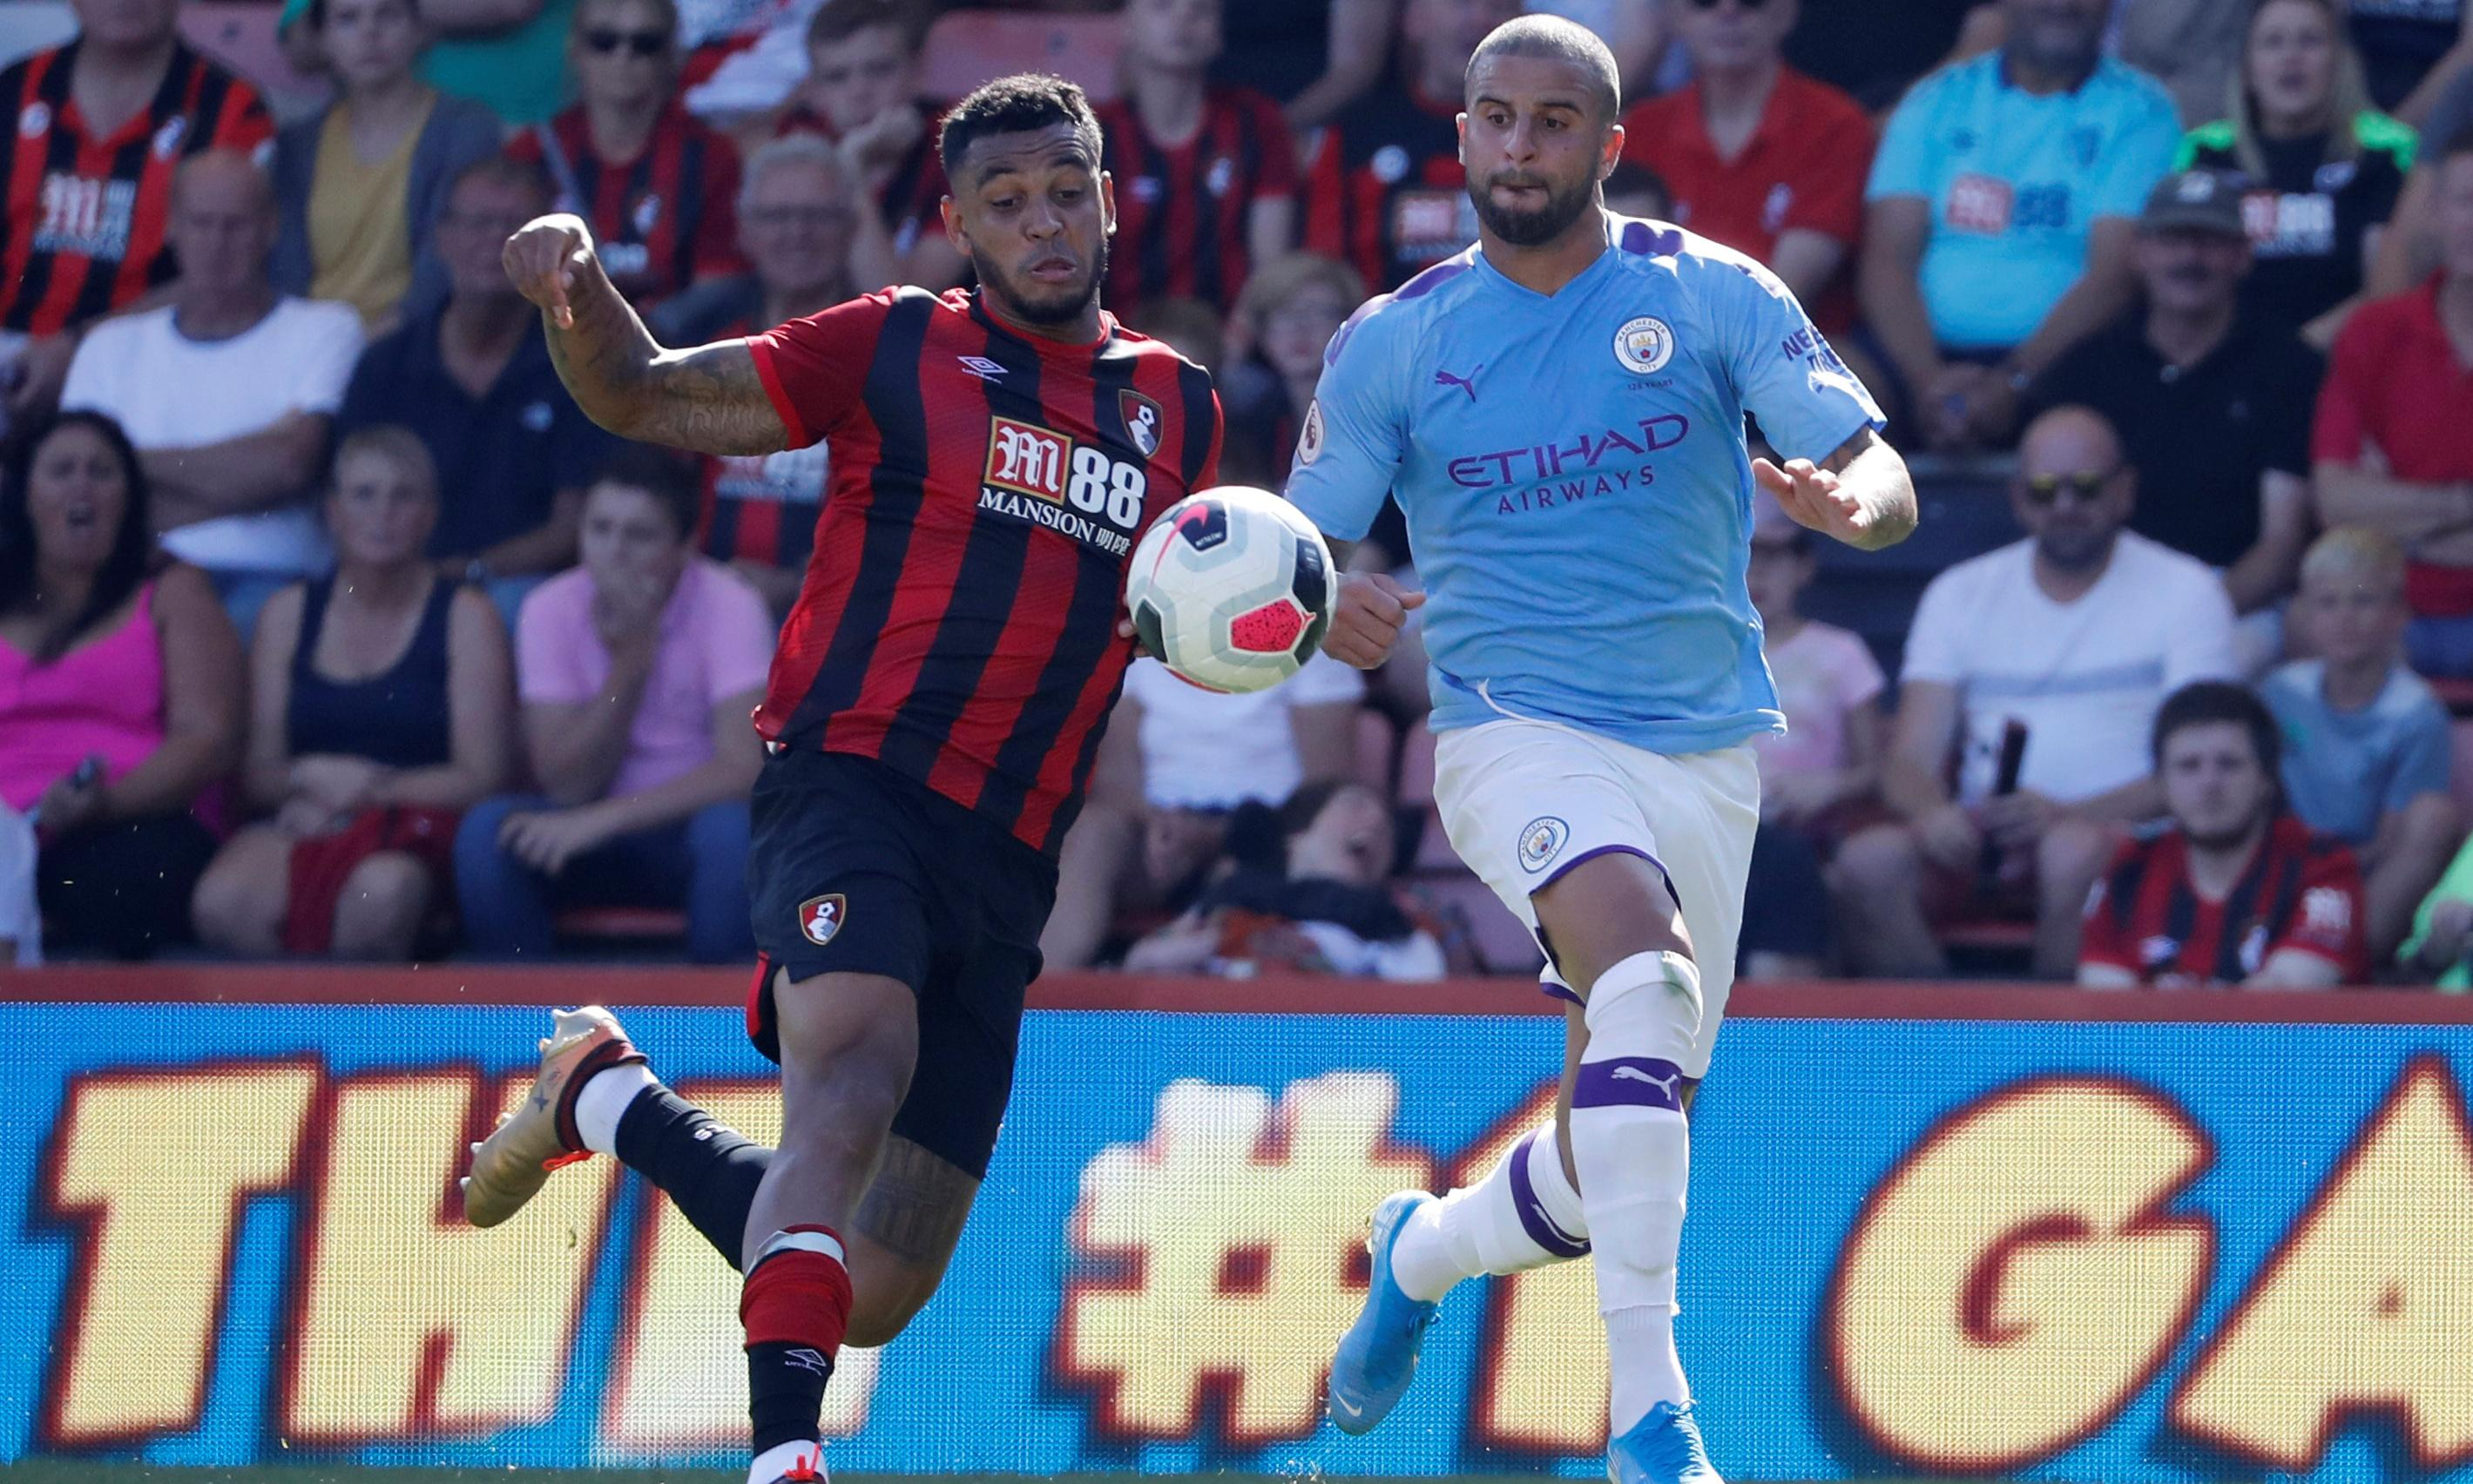 Guardiola has enviable options but Manchester City have flaws on flanks